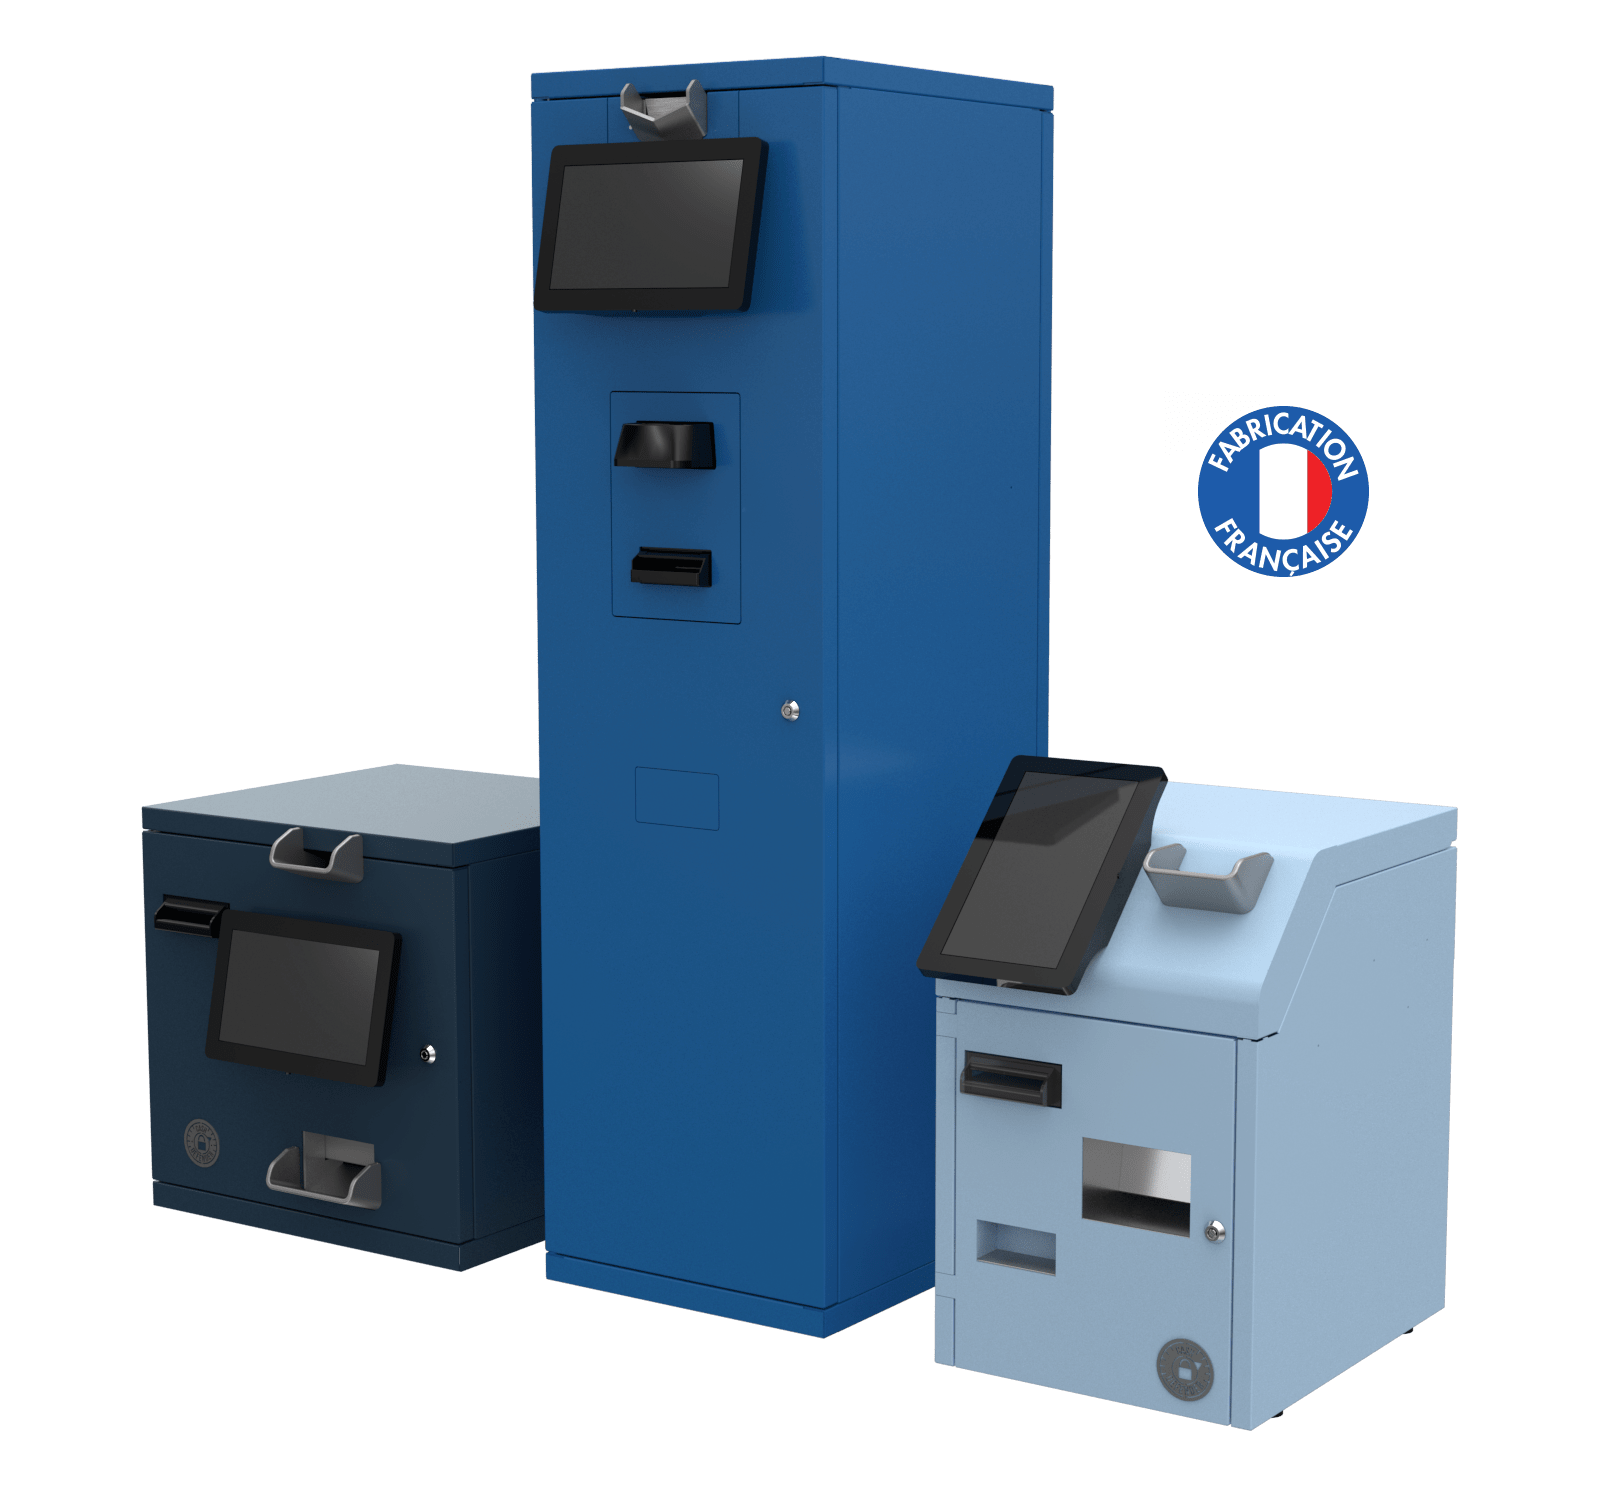 Monnayeur automatique cash defender